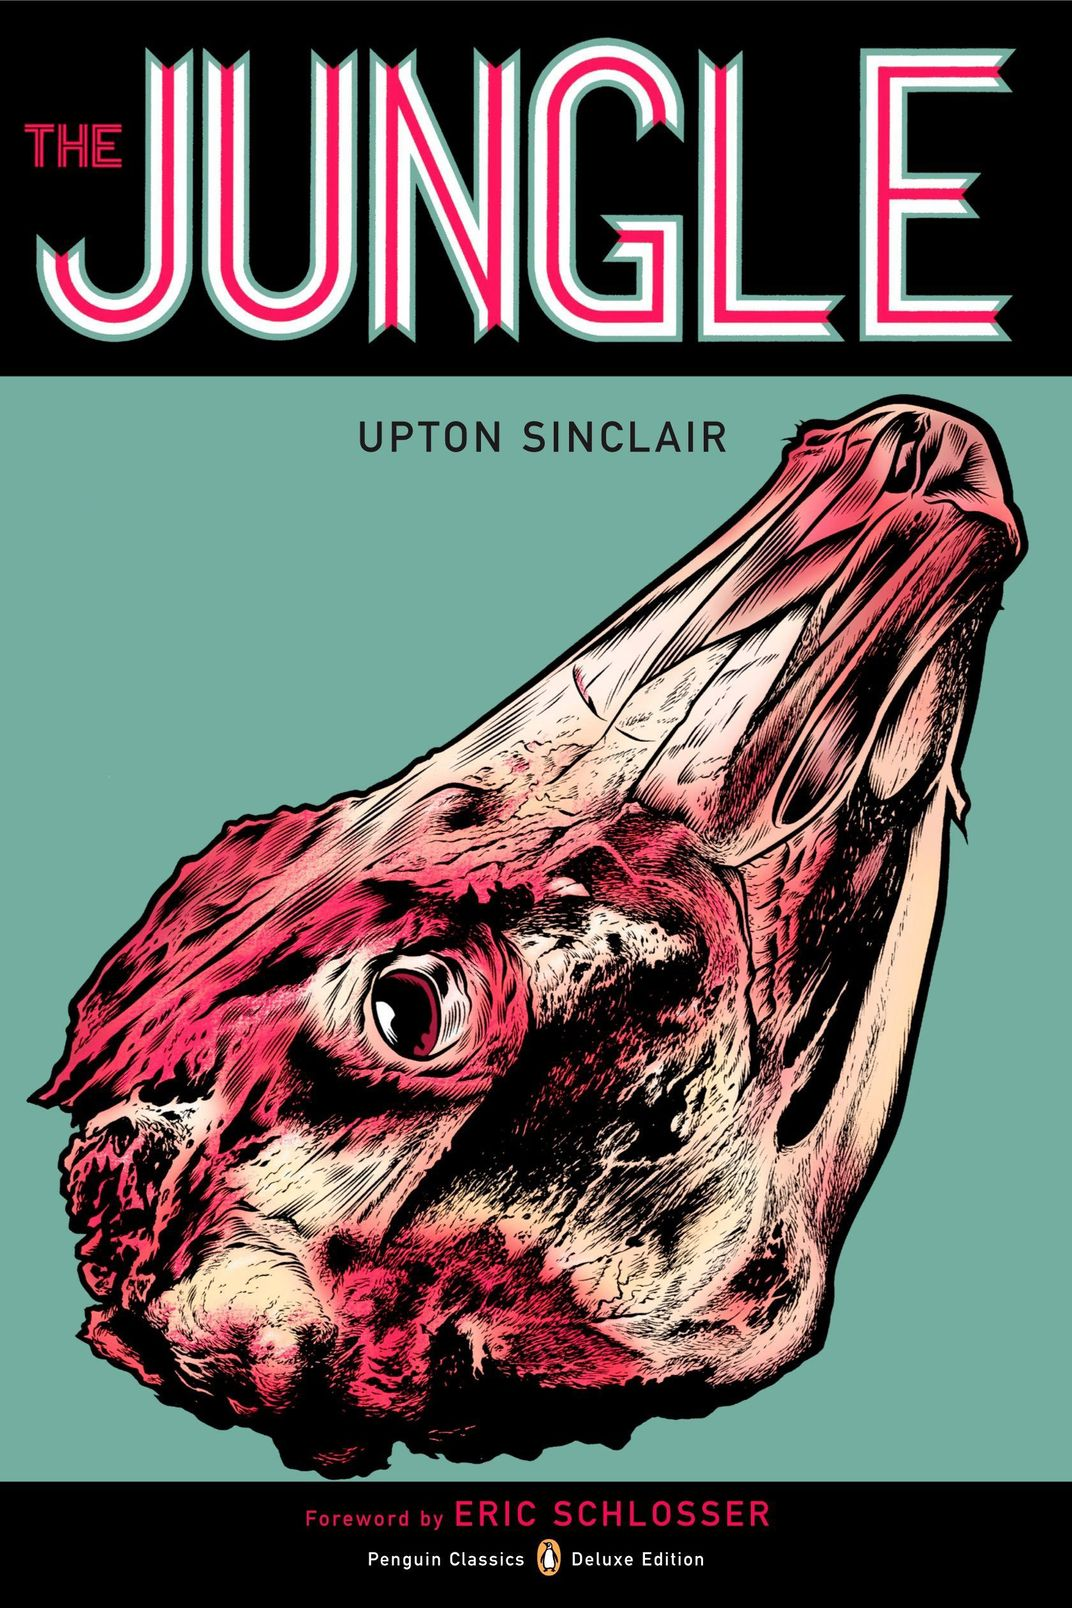 The Jungle, by Upton Sinclair